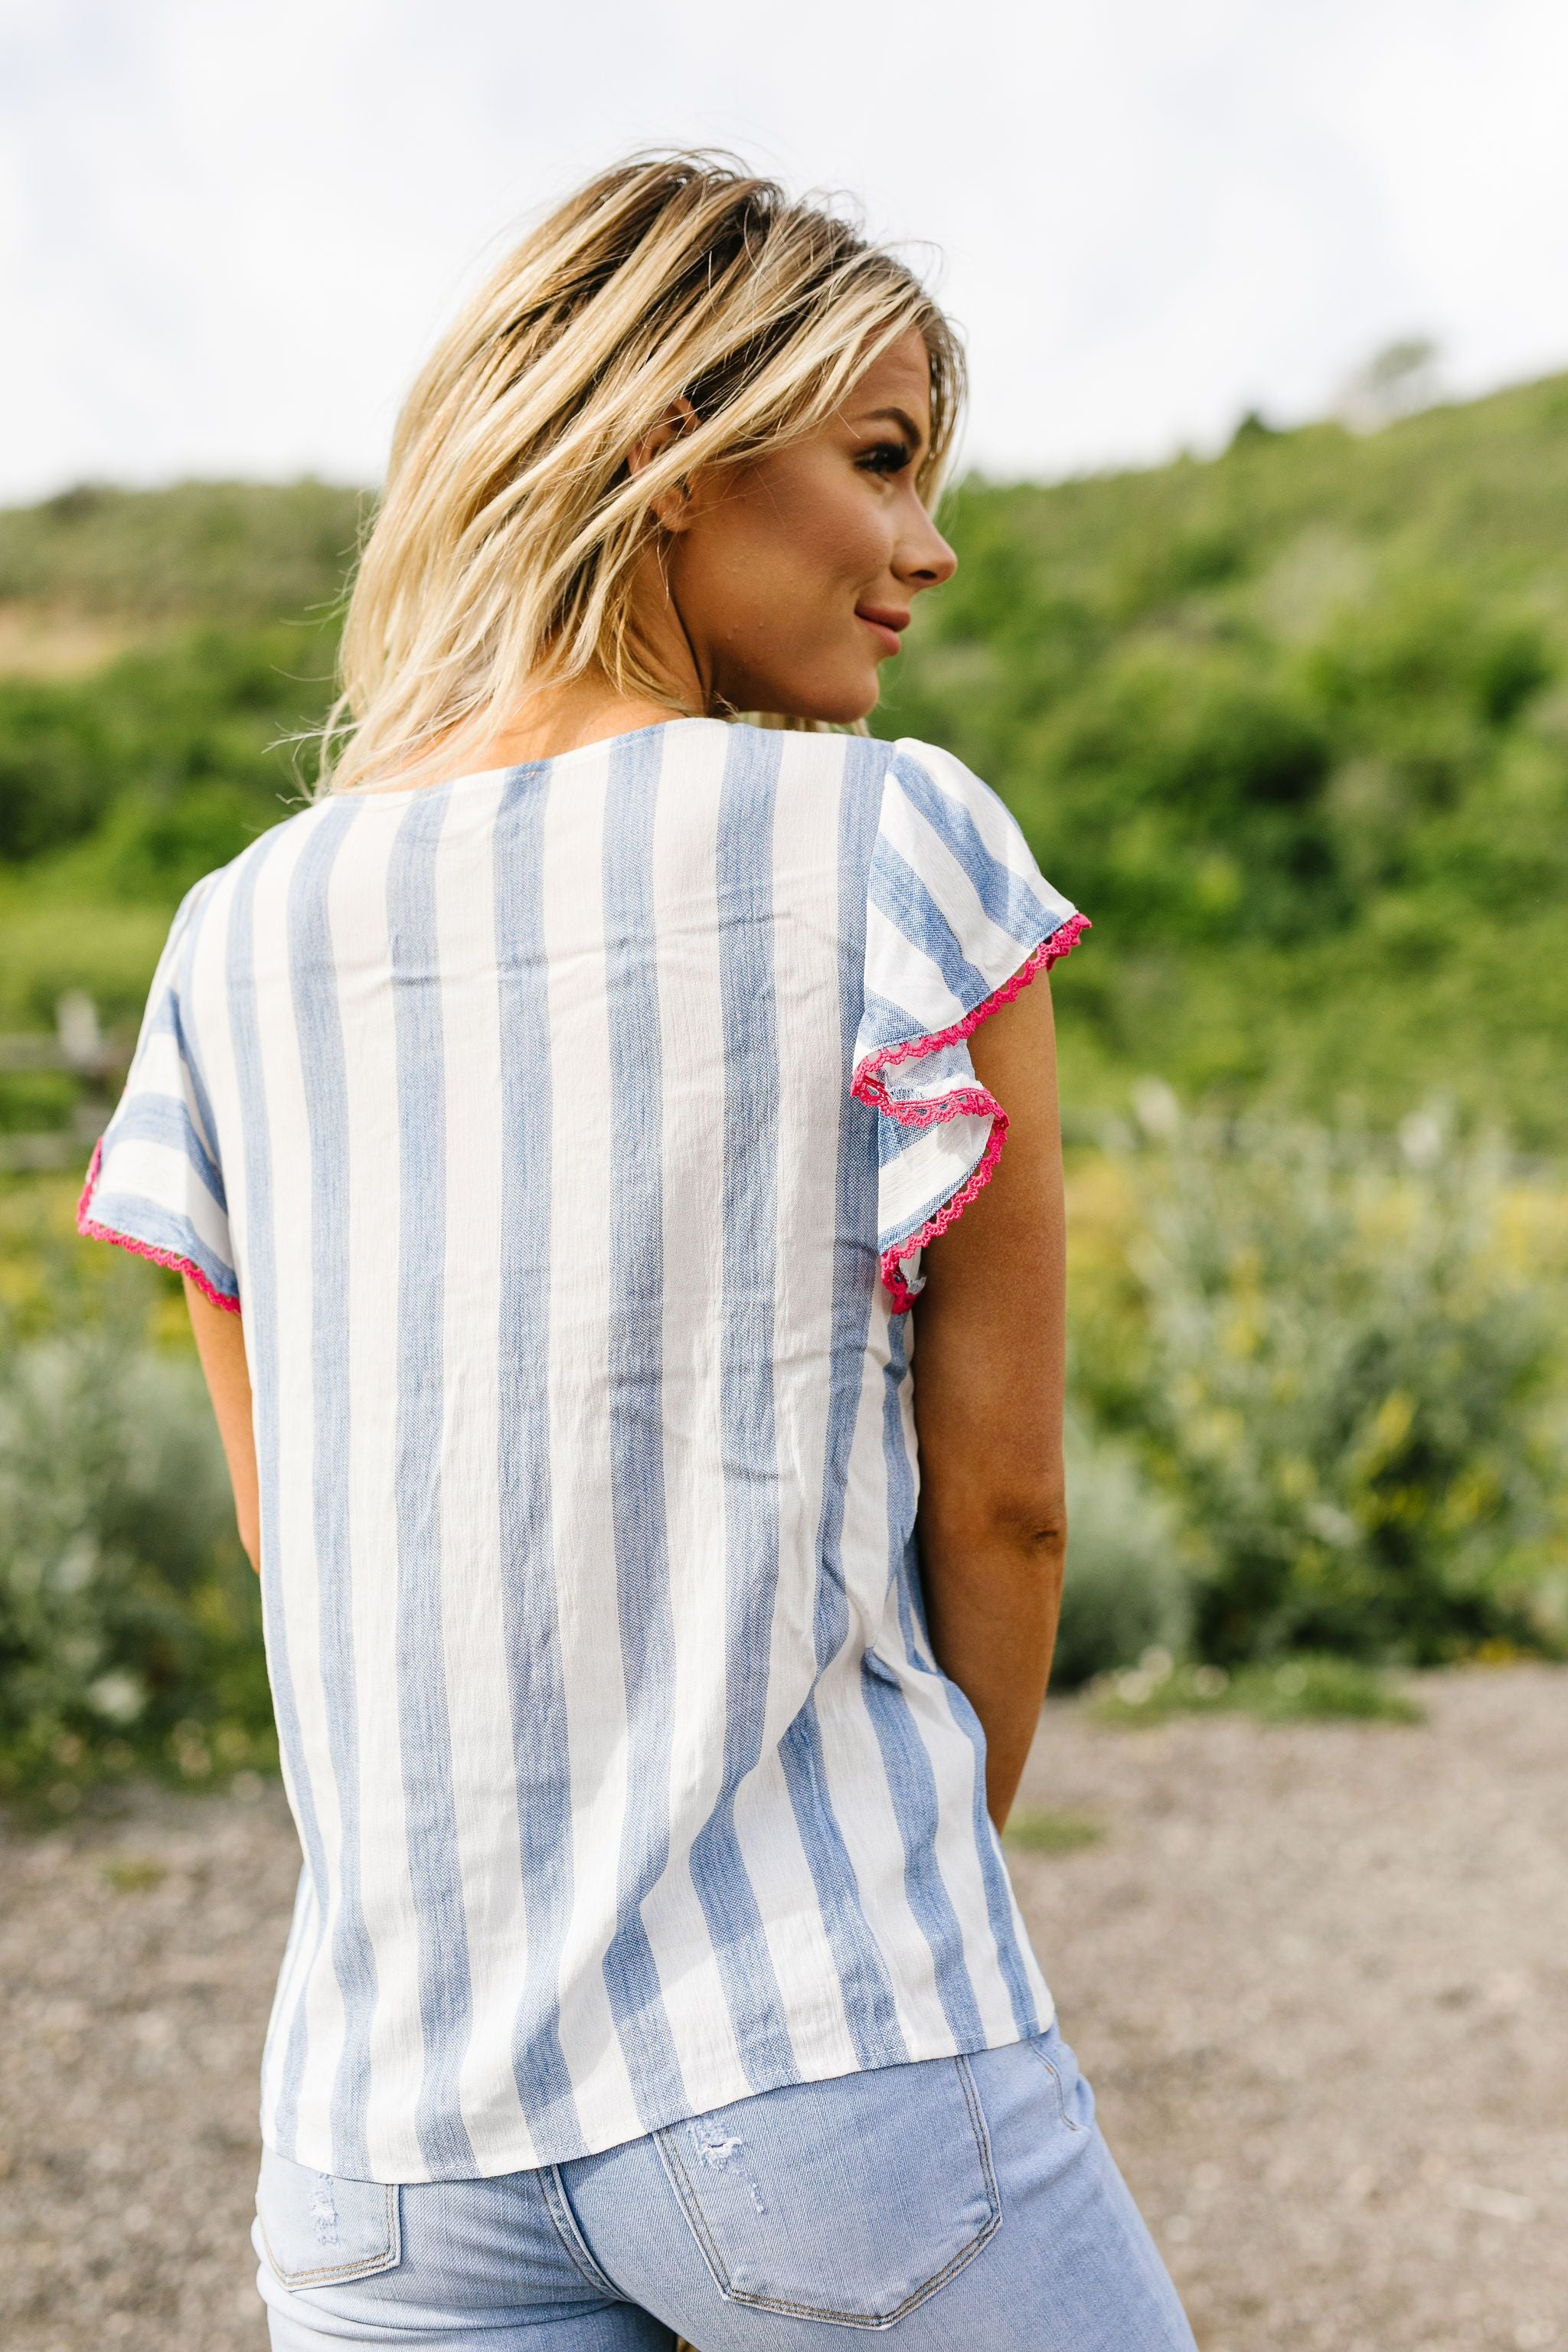 Petunias & Stripes Blouse